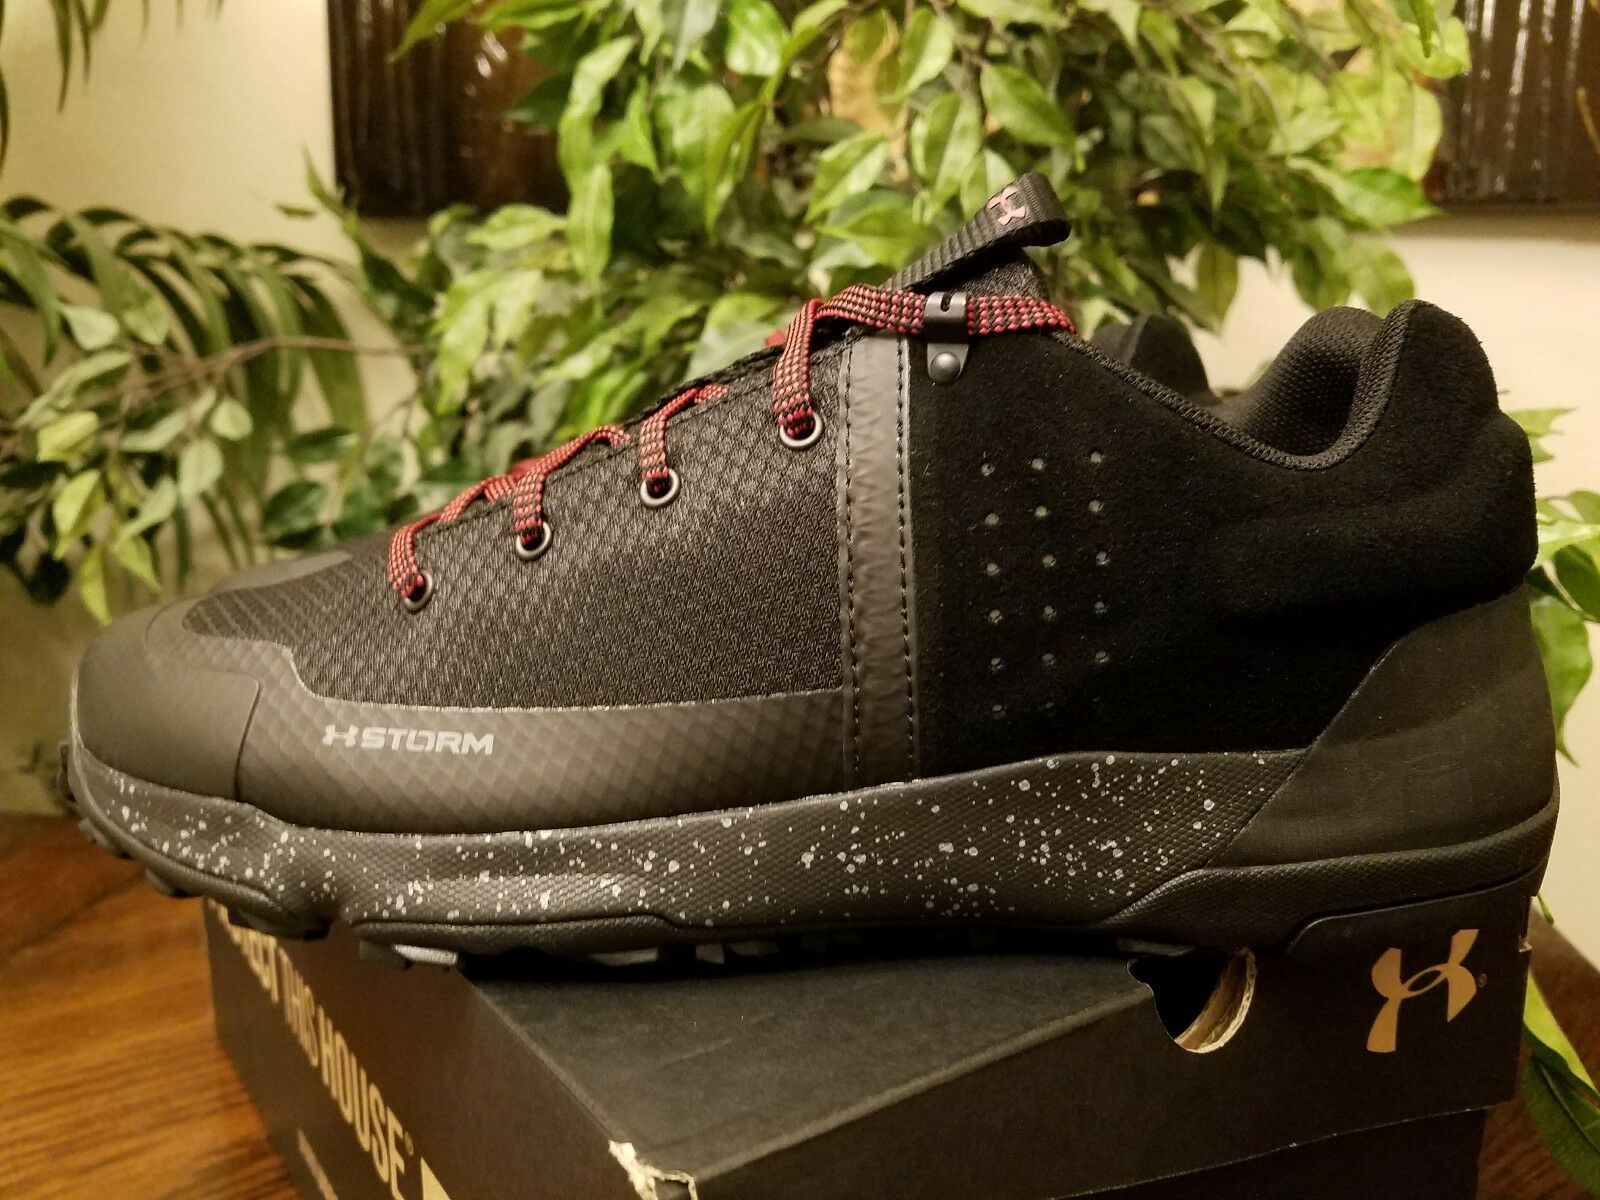 Under Armour Men's Burnt River 2.0 Low 1299199-001 Size 10 Black/Red THESPOT917